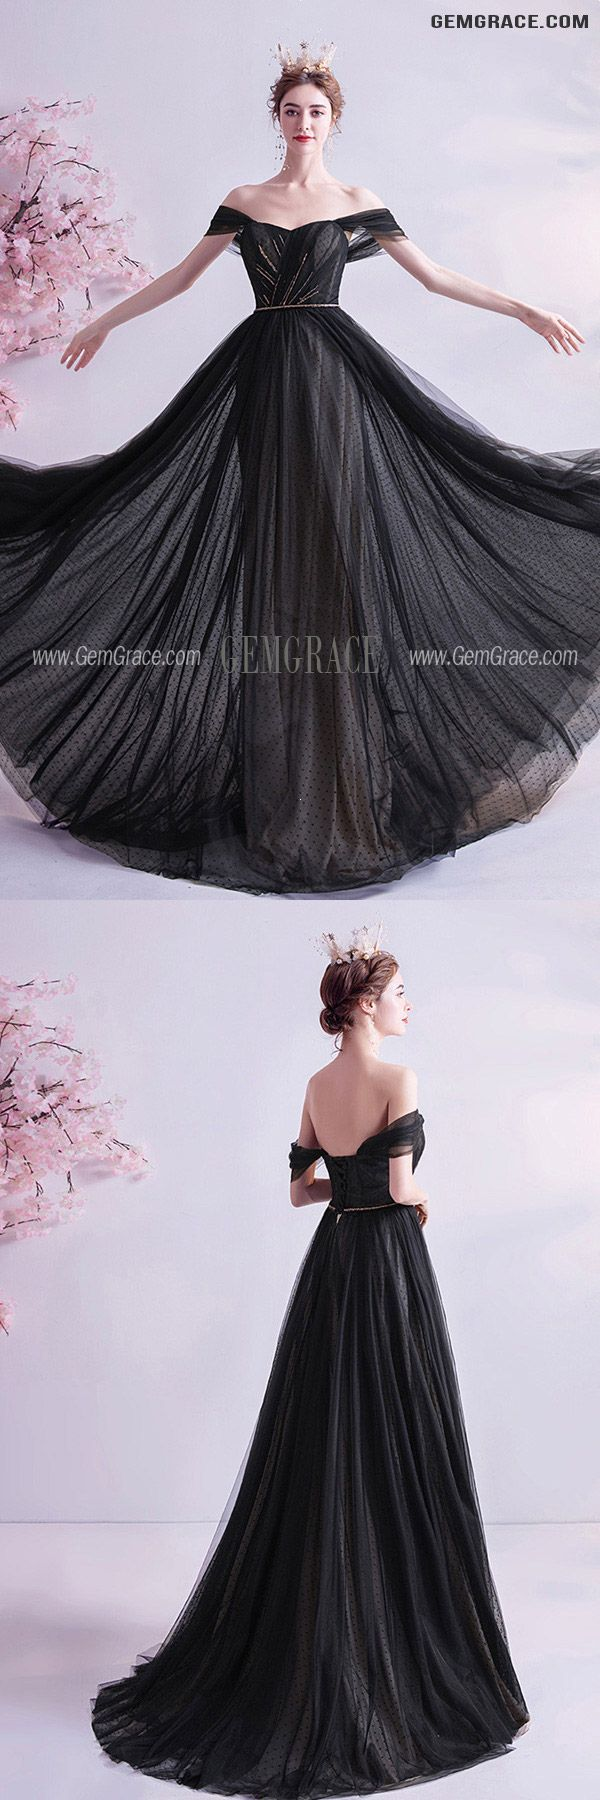 129 89 Formal Long Black Evening Prom Dress With Train Off Shoulder Wholesale T76068 Gemgrace Com In 2021 Prom Dress With Train Black Off Shoulder Dress Dresses [ 1800 x 600 Pixel ]